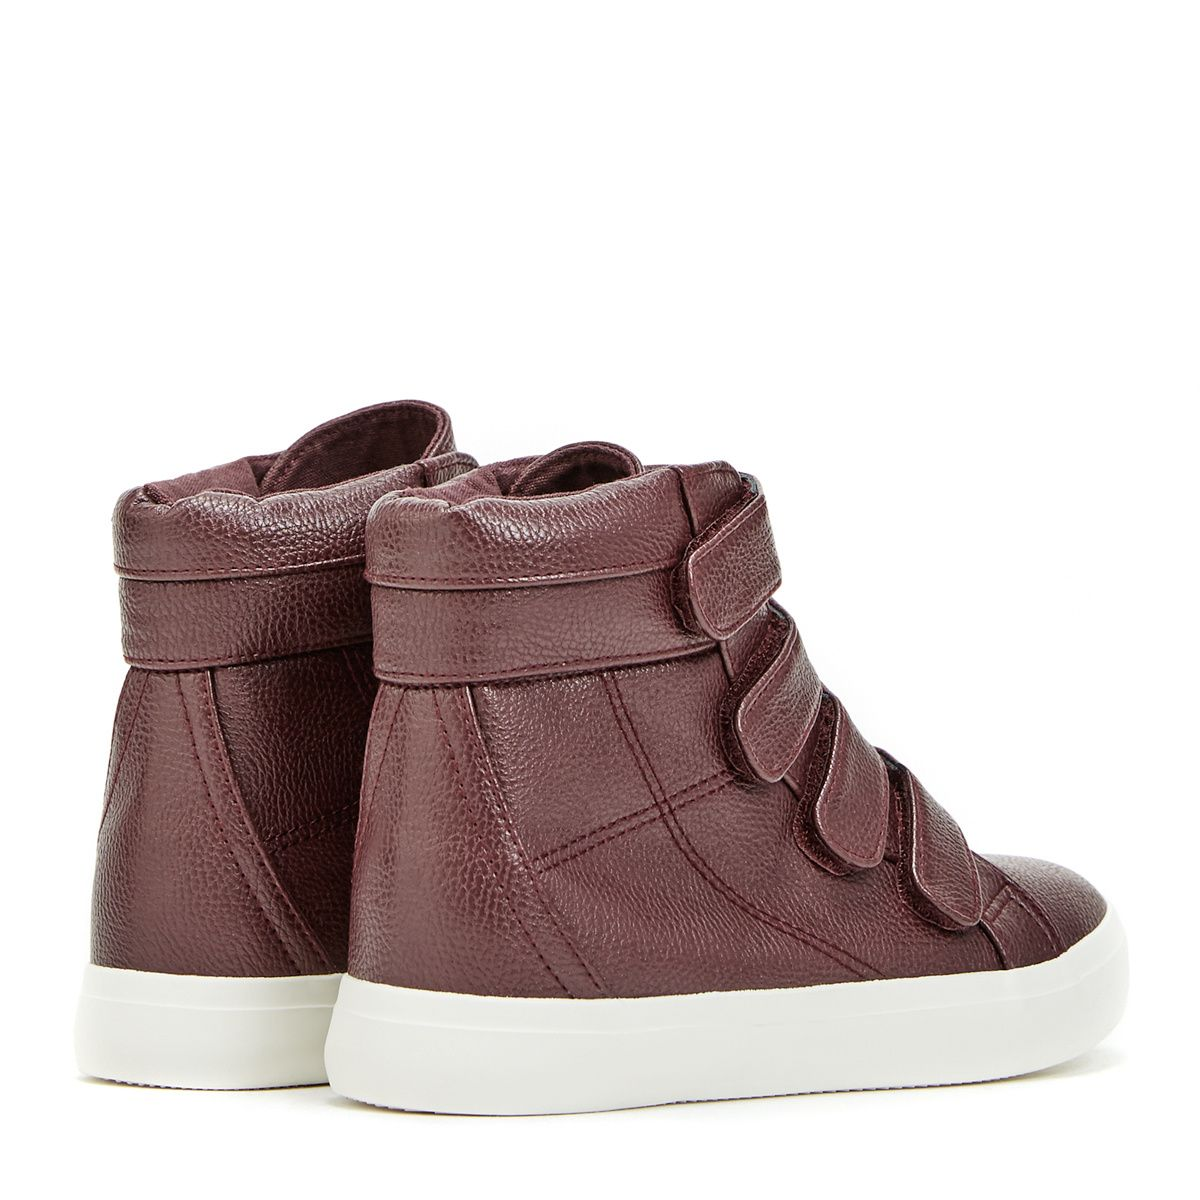 We love a cute high-top sneaker, but we especially love Leilah by JustFab. Why?…